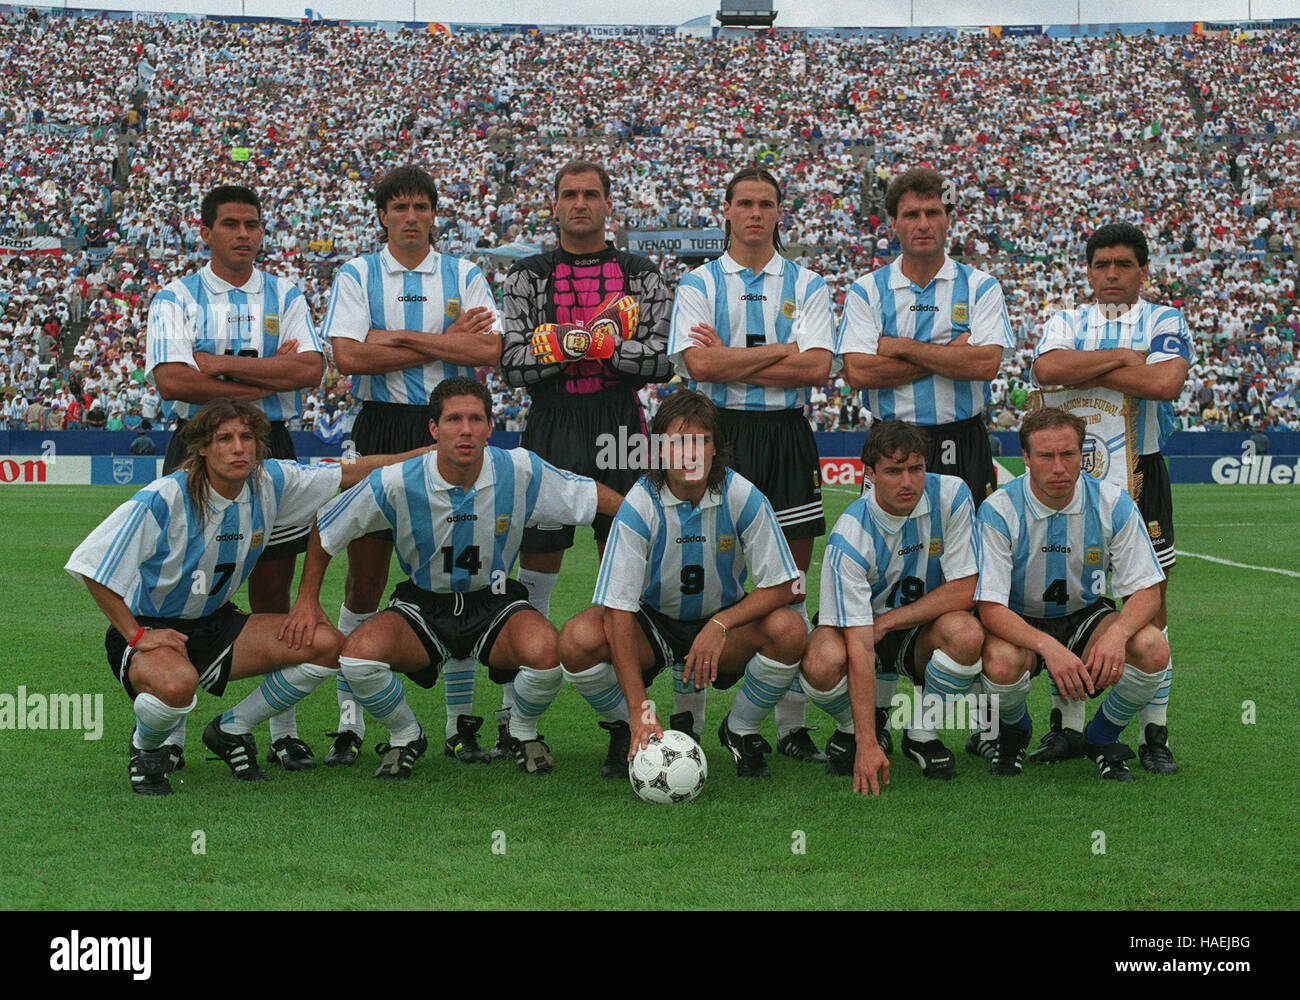 fb54ef854b6833 ARGENTINIAN FOOTBALL TEAM ARGENTINA WORLD CUP FINALS 20 July 1994 ...